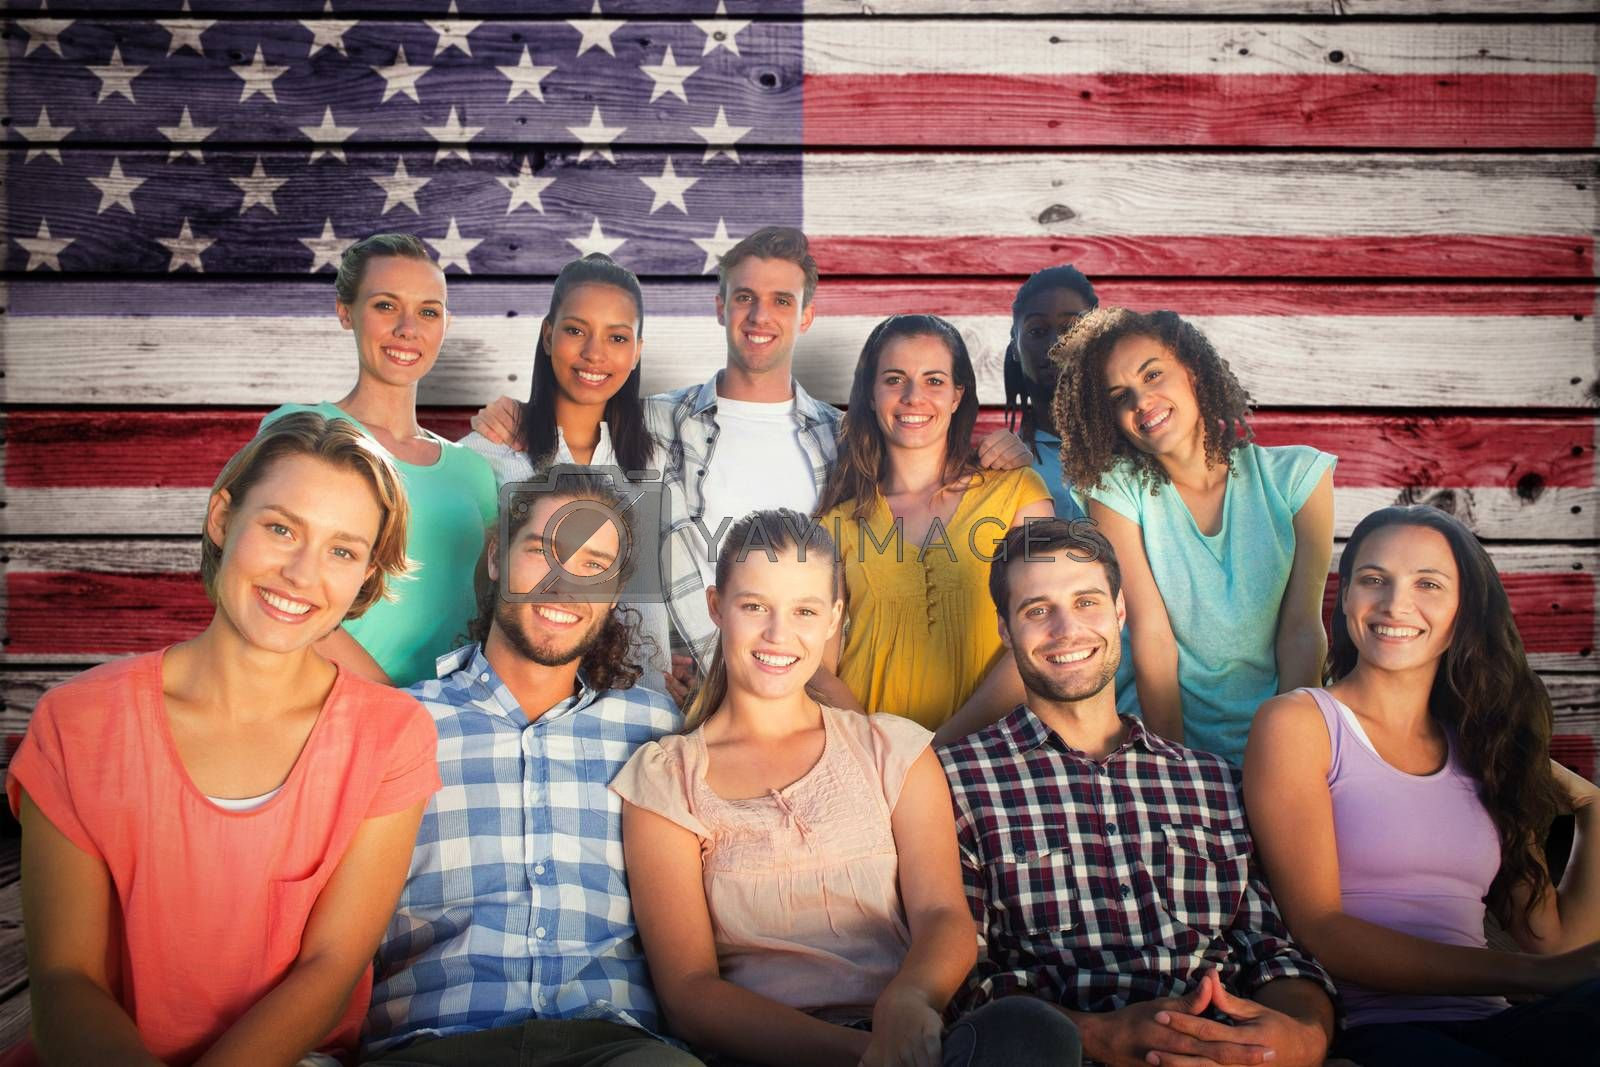 Friends smiling at camera against composite image of usa national flag